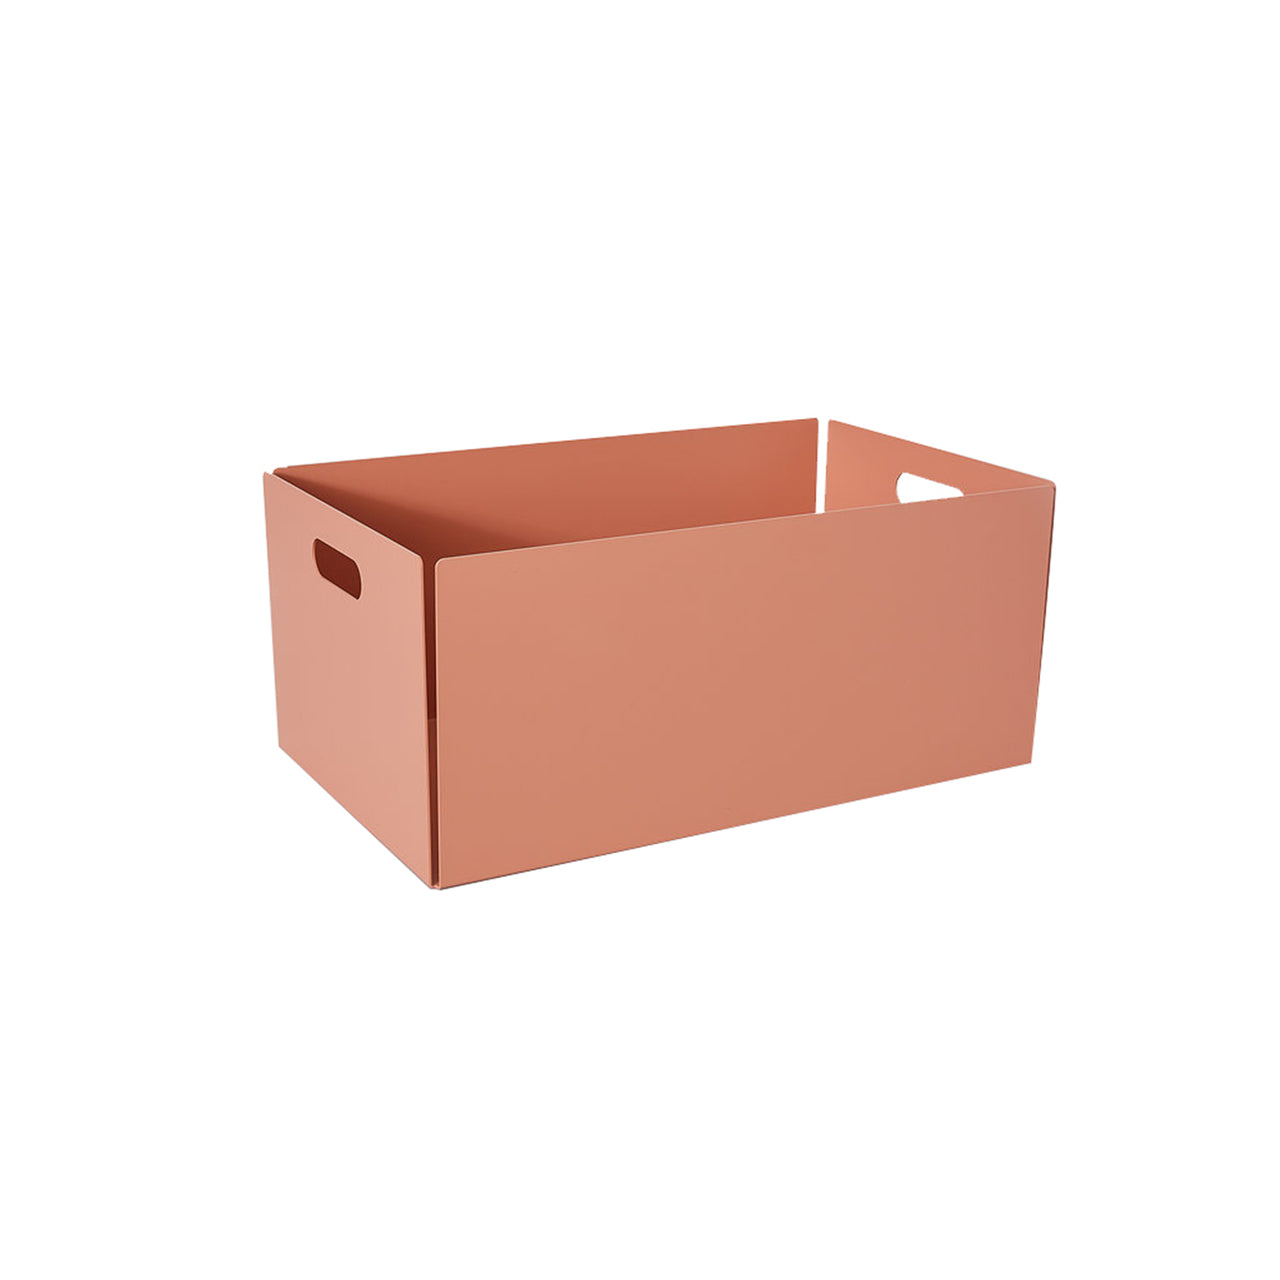 Metal Dowel Basket: Large + Beige Red